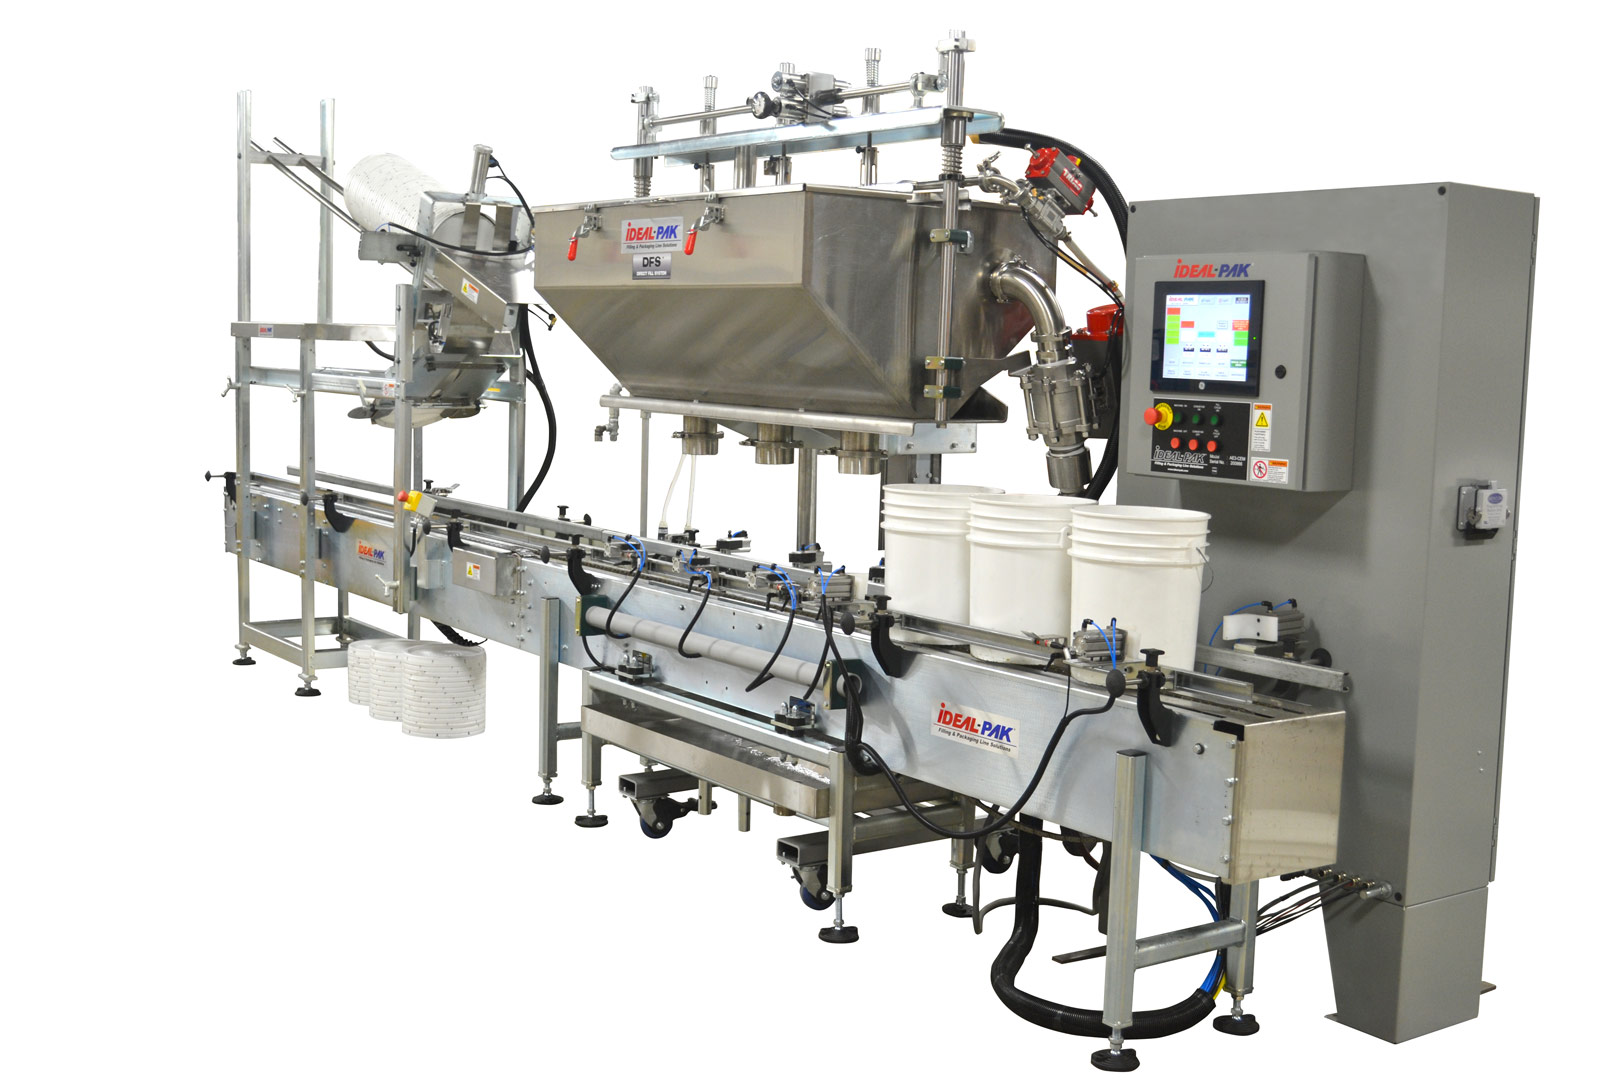 3 Head Filler with DFS Cart. 5 Gallon Plastic Pails with Automatic High Speed Lid Placer